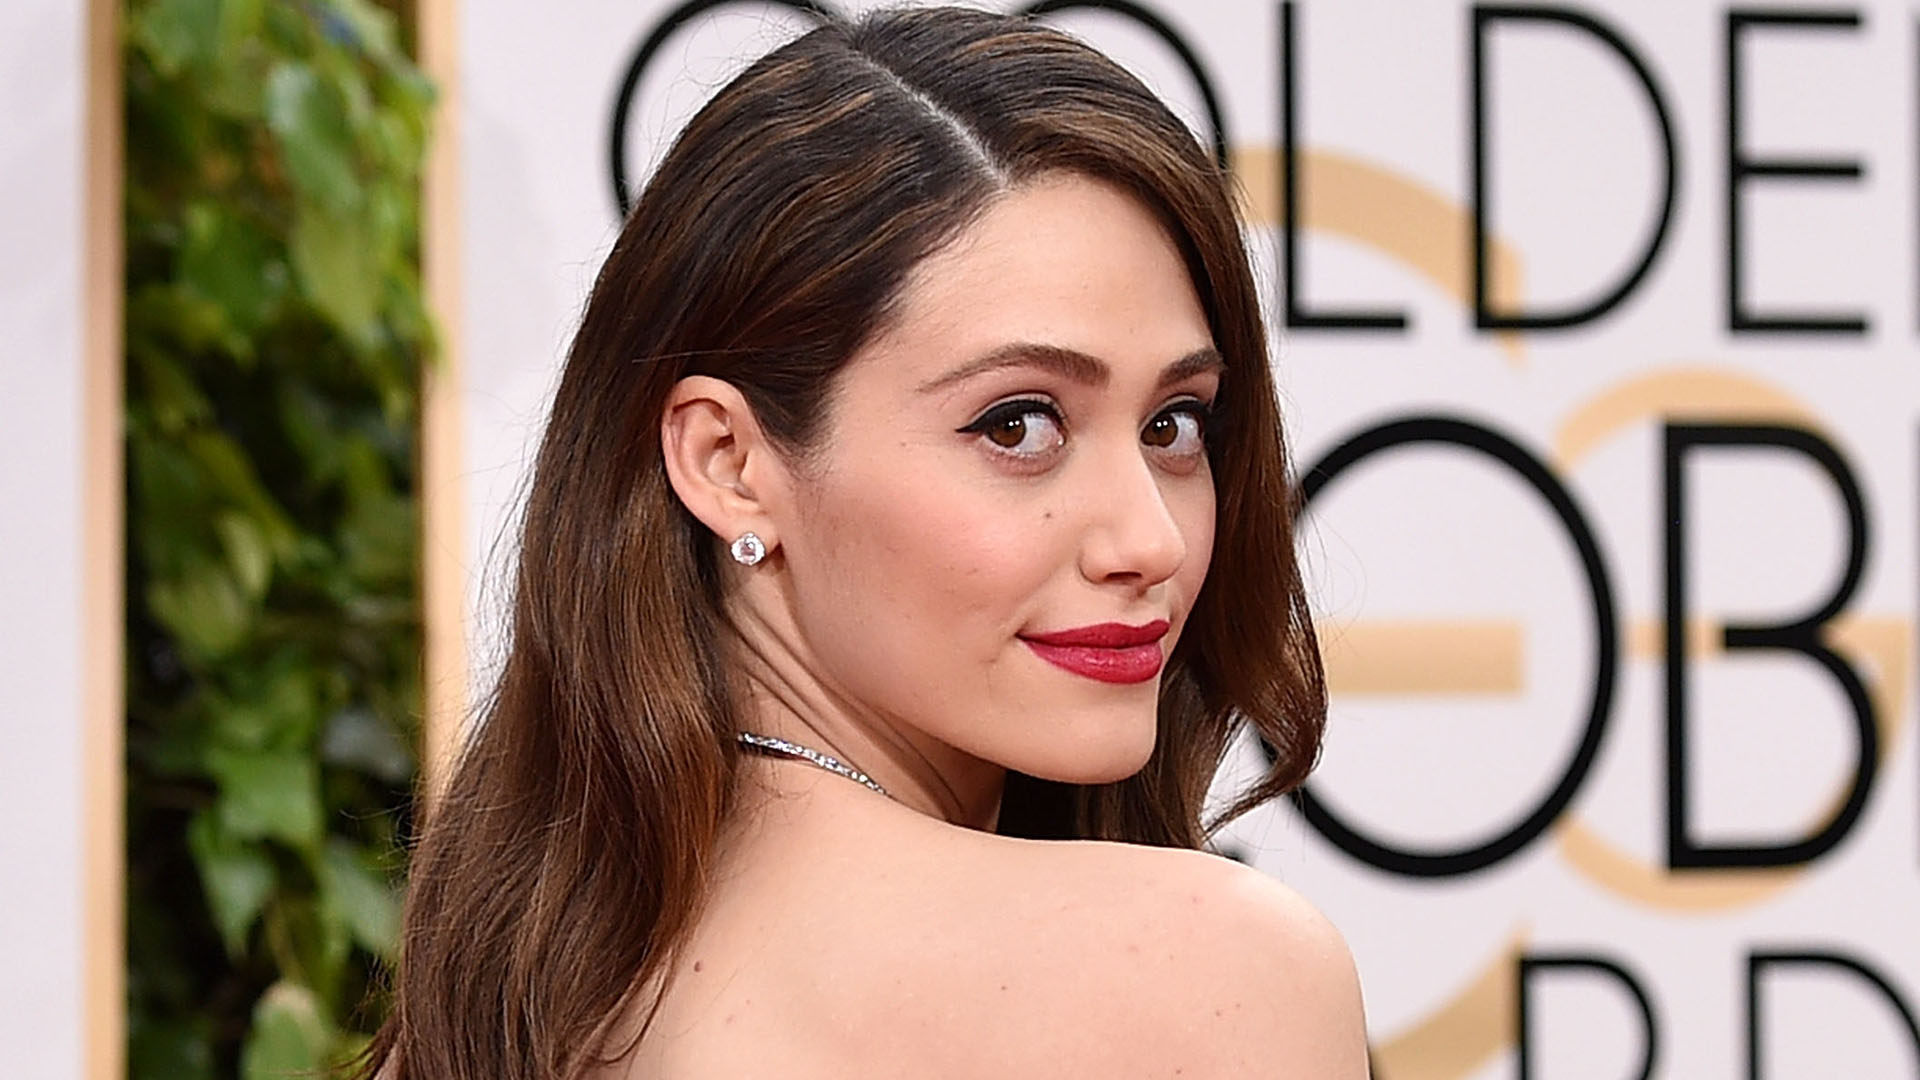 Emmy Rossum Showed Off Her Naturally Curly Hair in a Rare Instagram Selfie